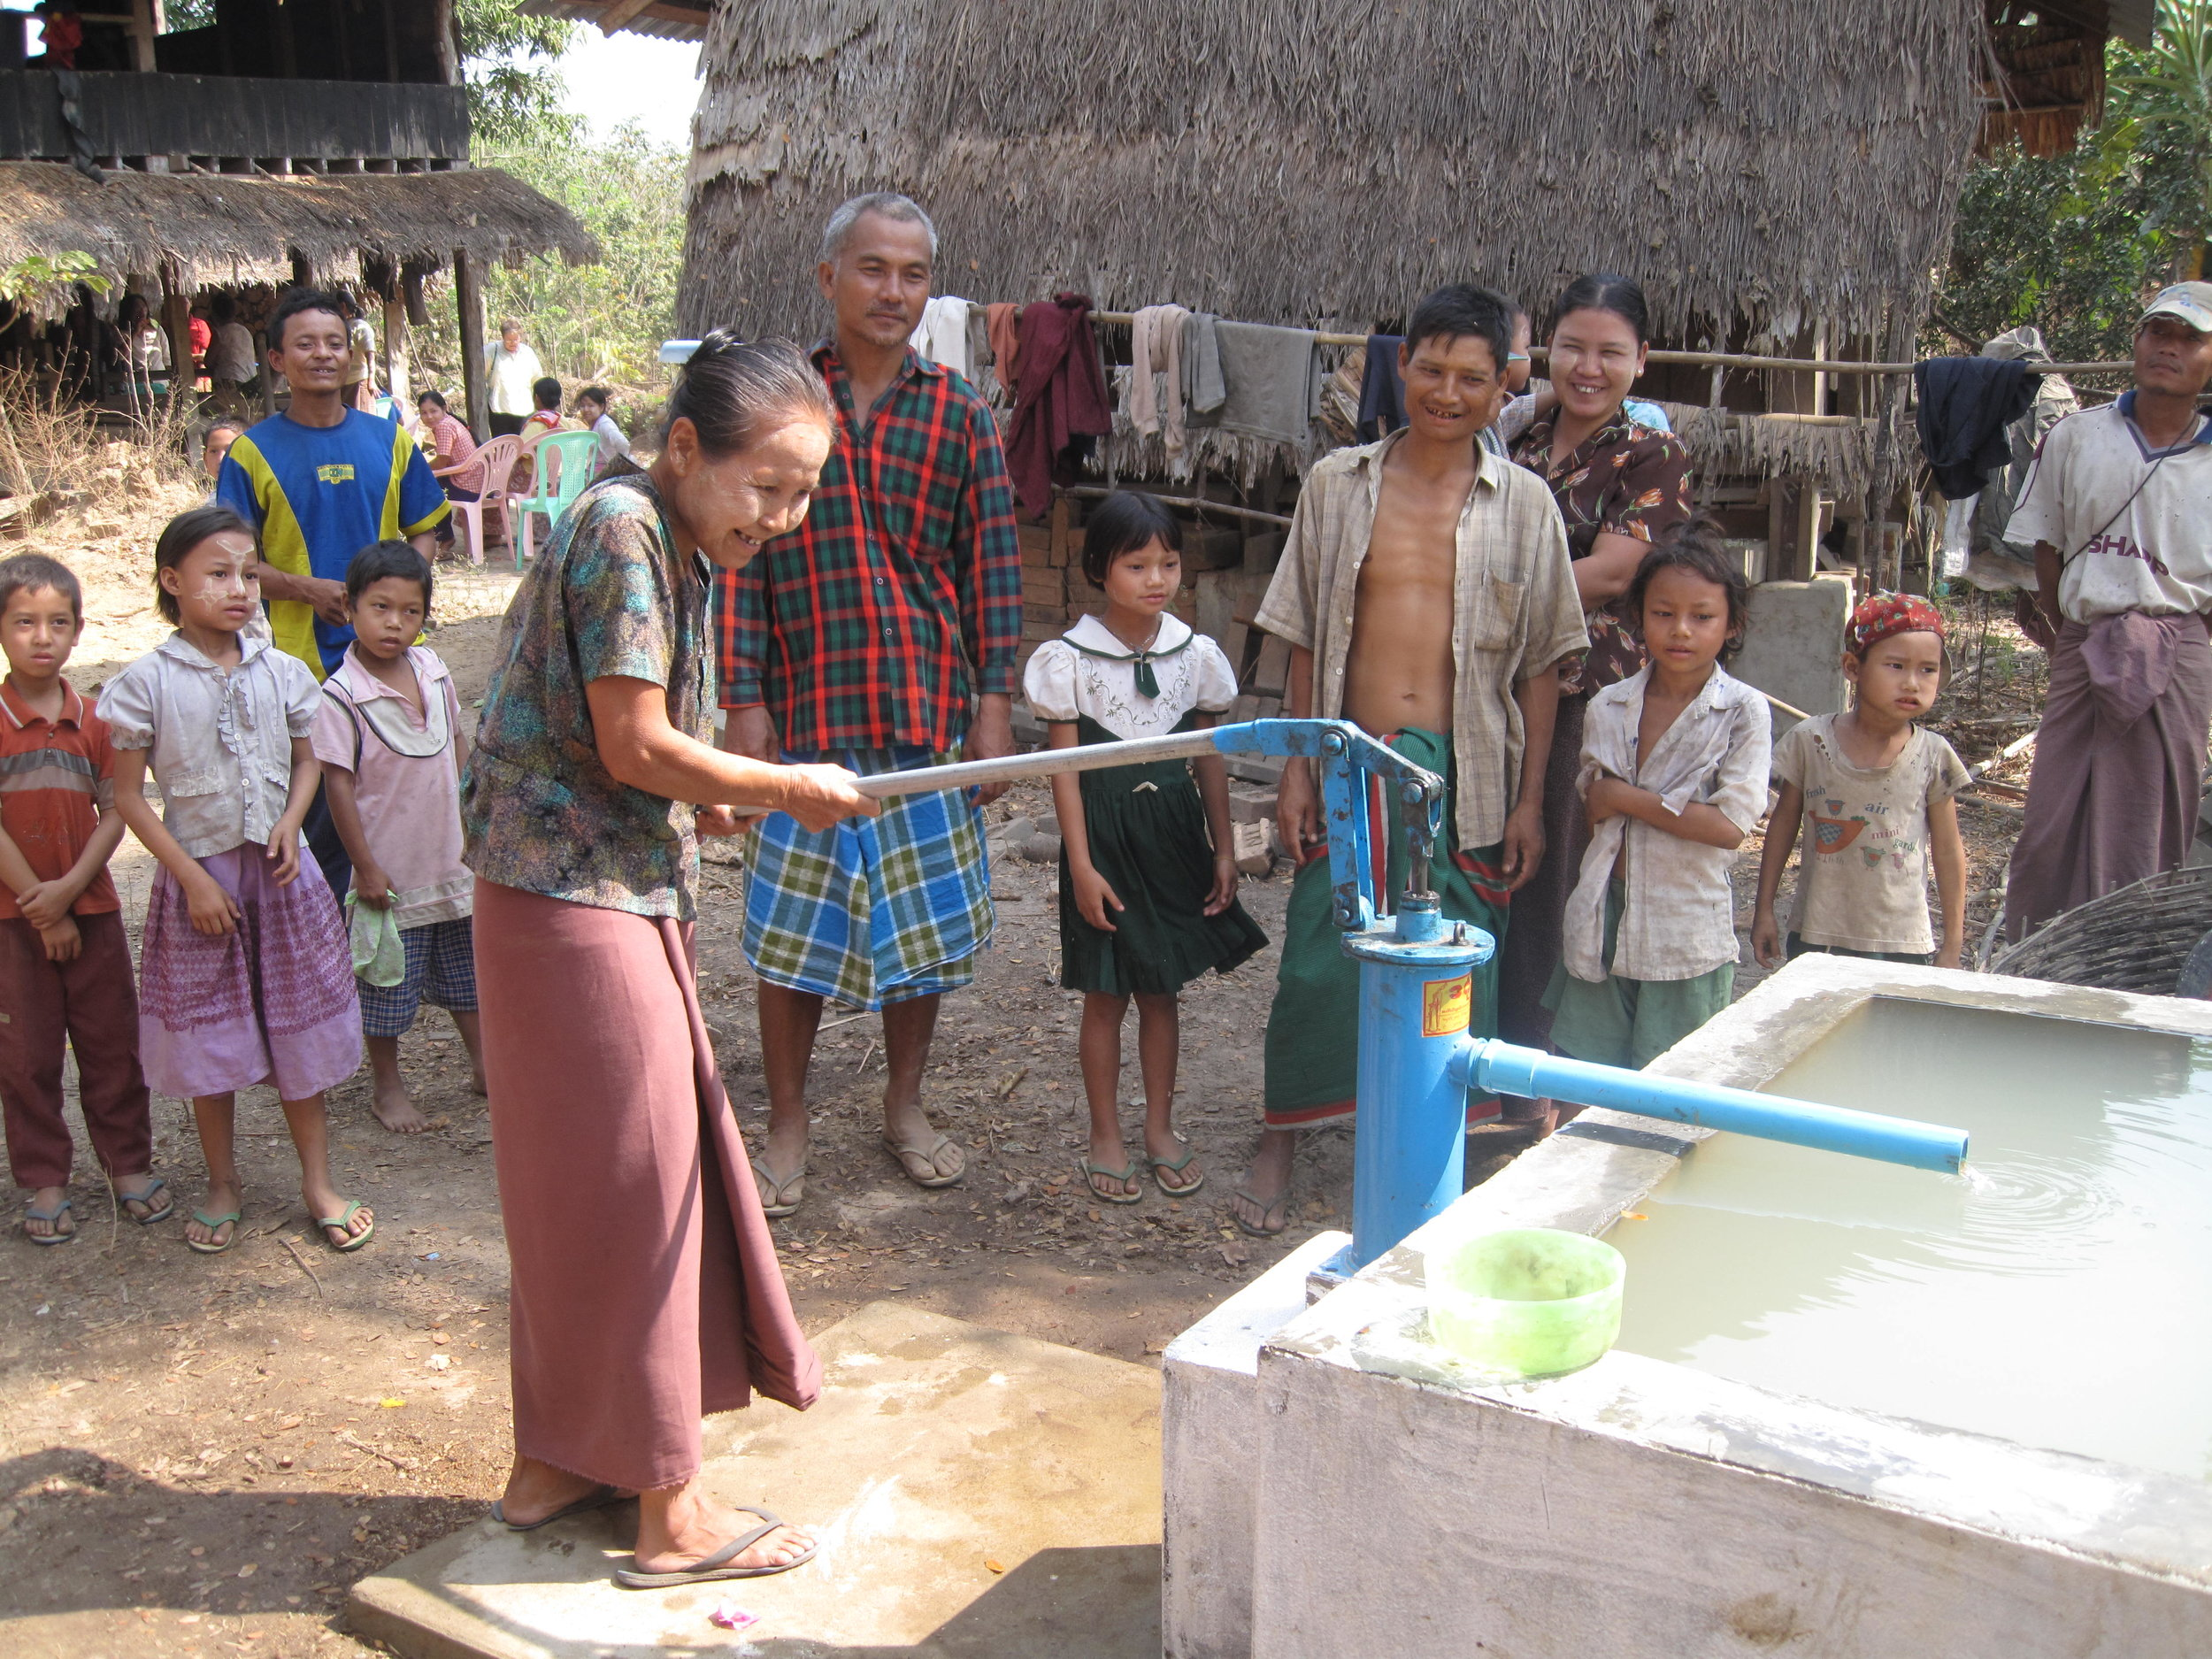 A new clean water well betters the lives for generations of Myanmarese people